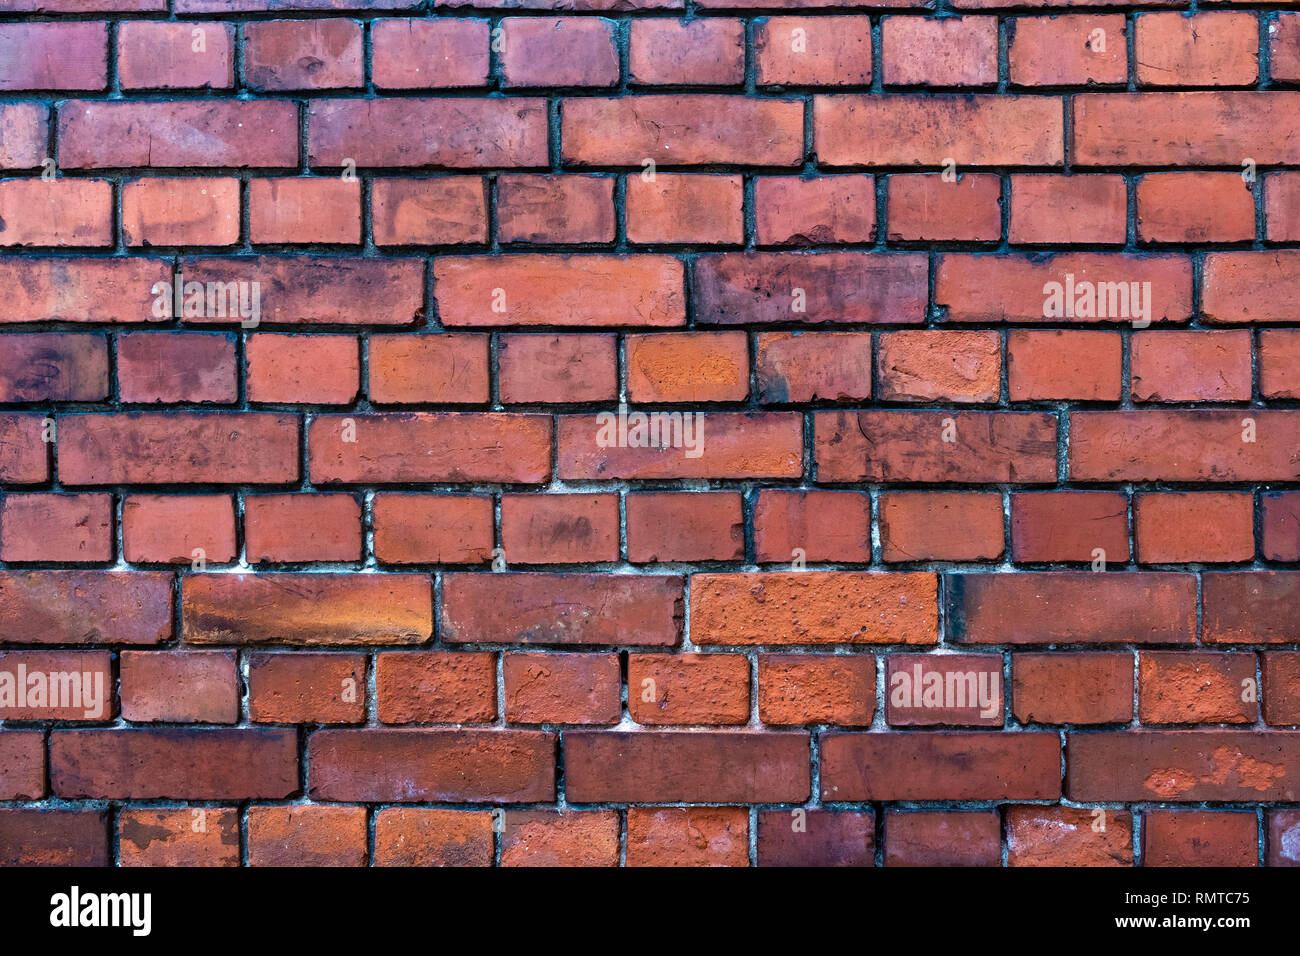 Front close-up view of a old brick wall. - Stock Image